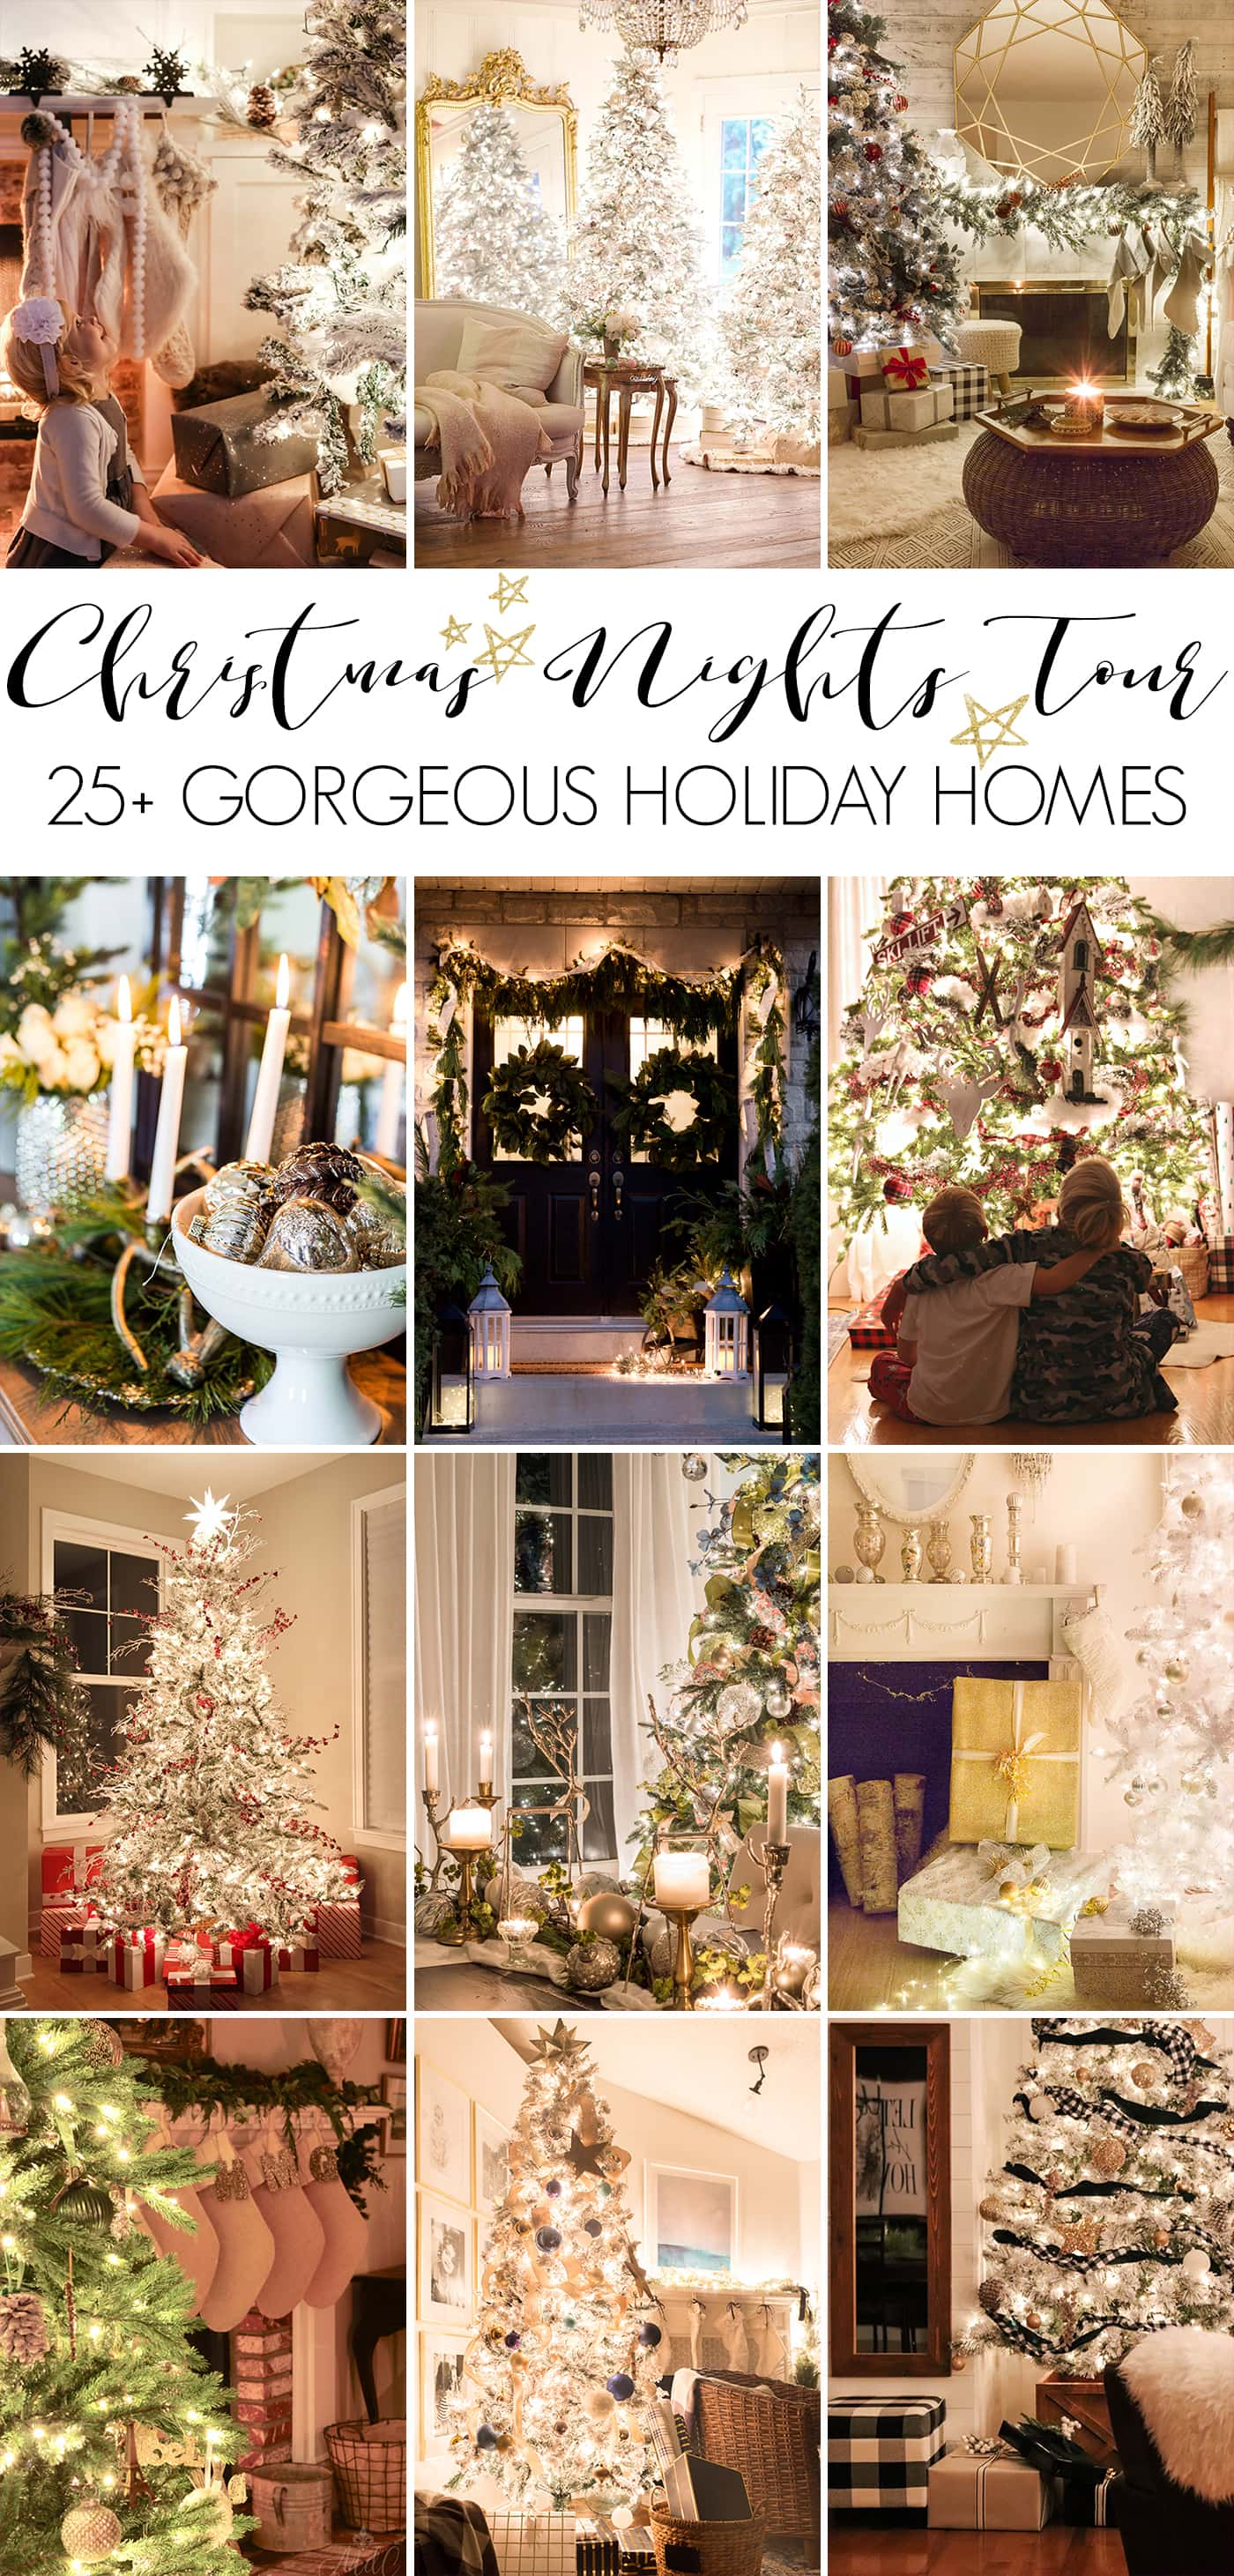 Christmas nights tour gorgeous Christmas lights at night in these 25+ home tours #christmasnightstour #holidayhometour #christmaslights